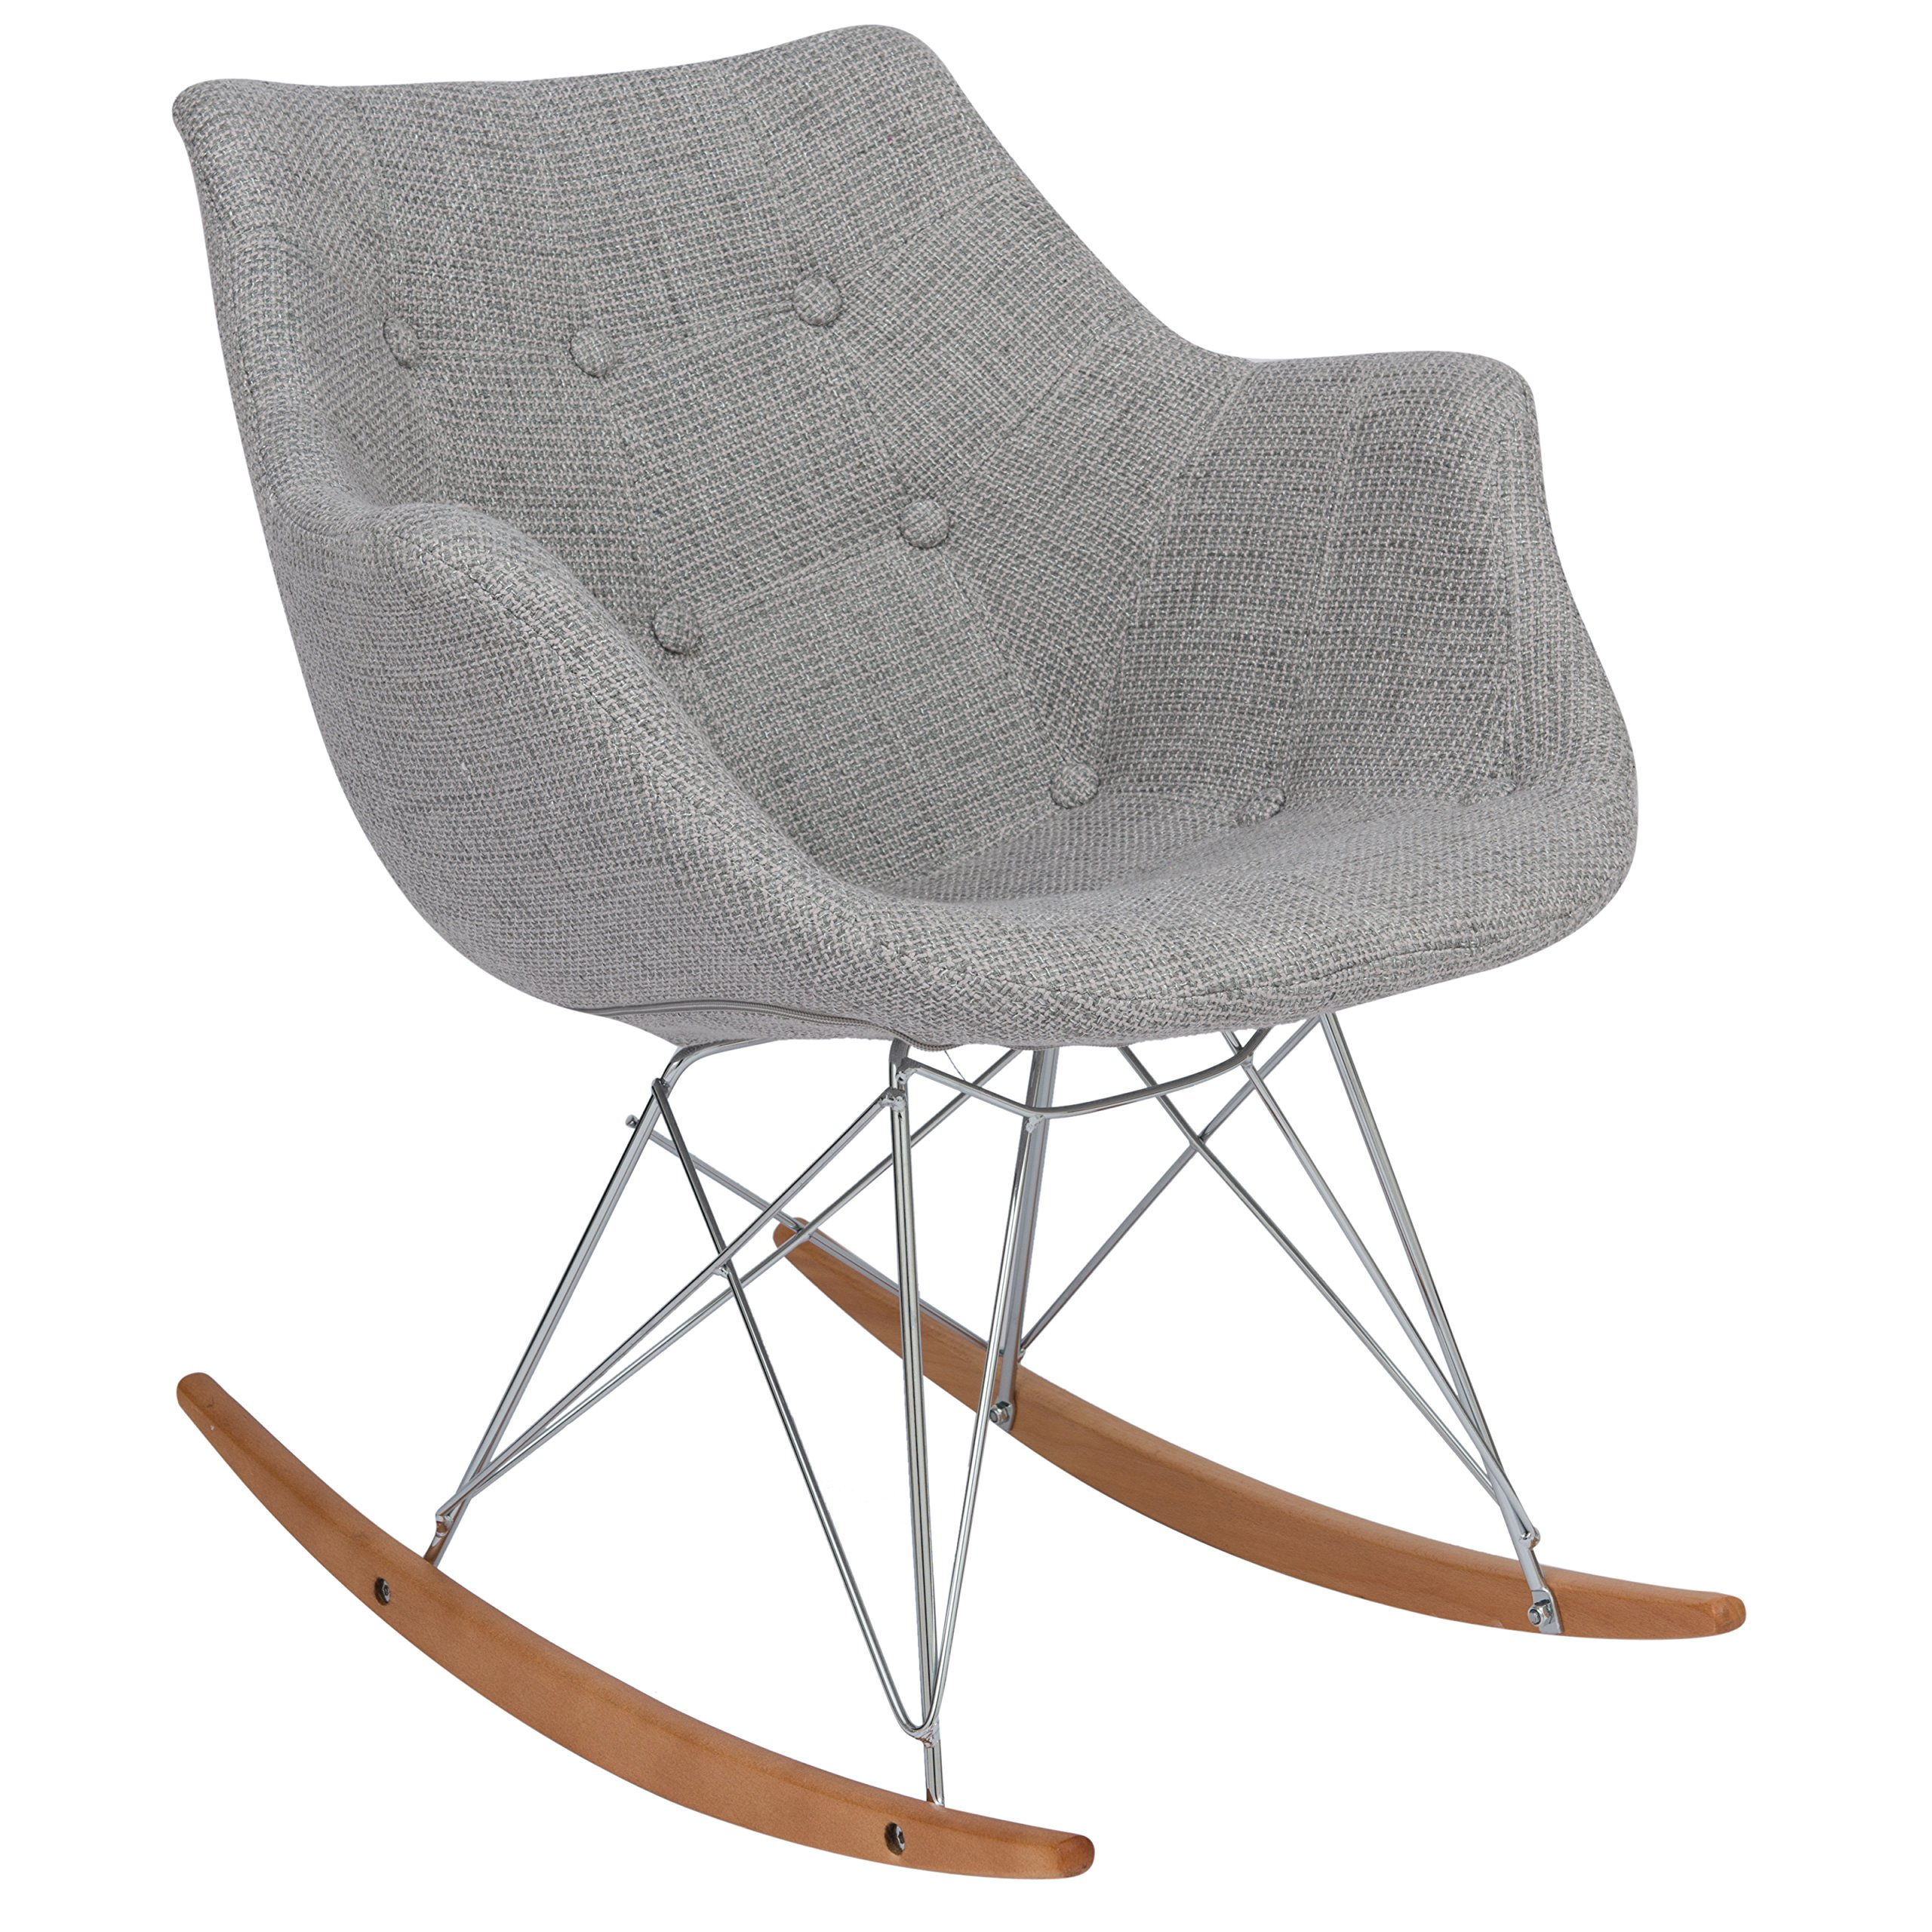 LeisureMod Willow Fabric Eiffel Base Modern Petite Rocking Chair in Grey